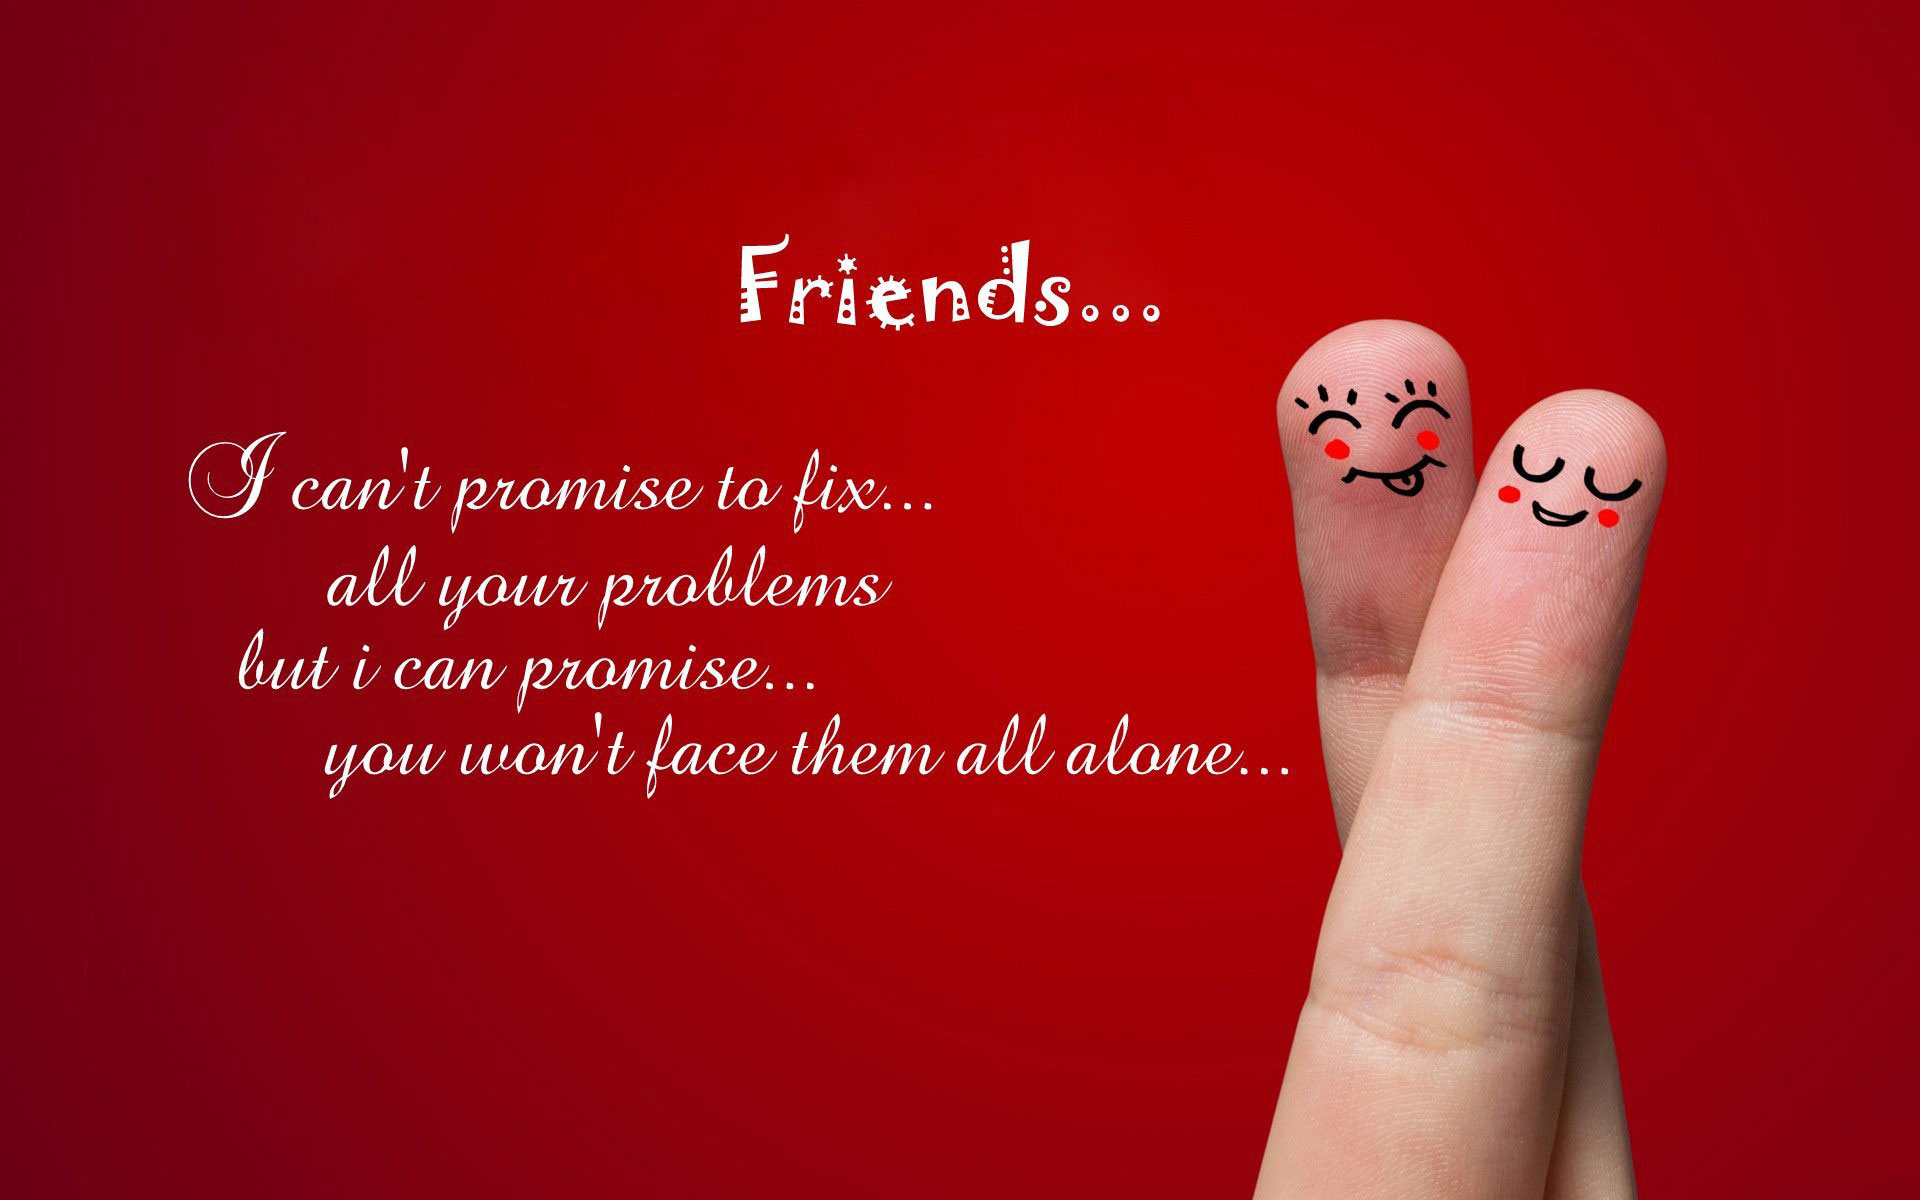 Images About Friendship Quotes 40 Cute Friendship Quotes With Images  Friendship Wallpapers